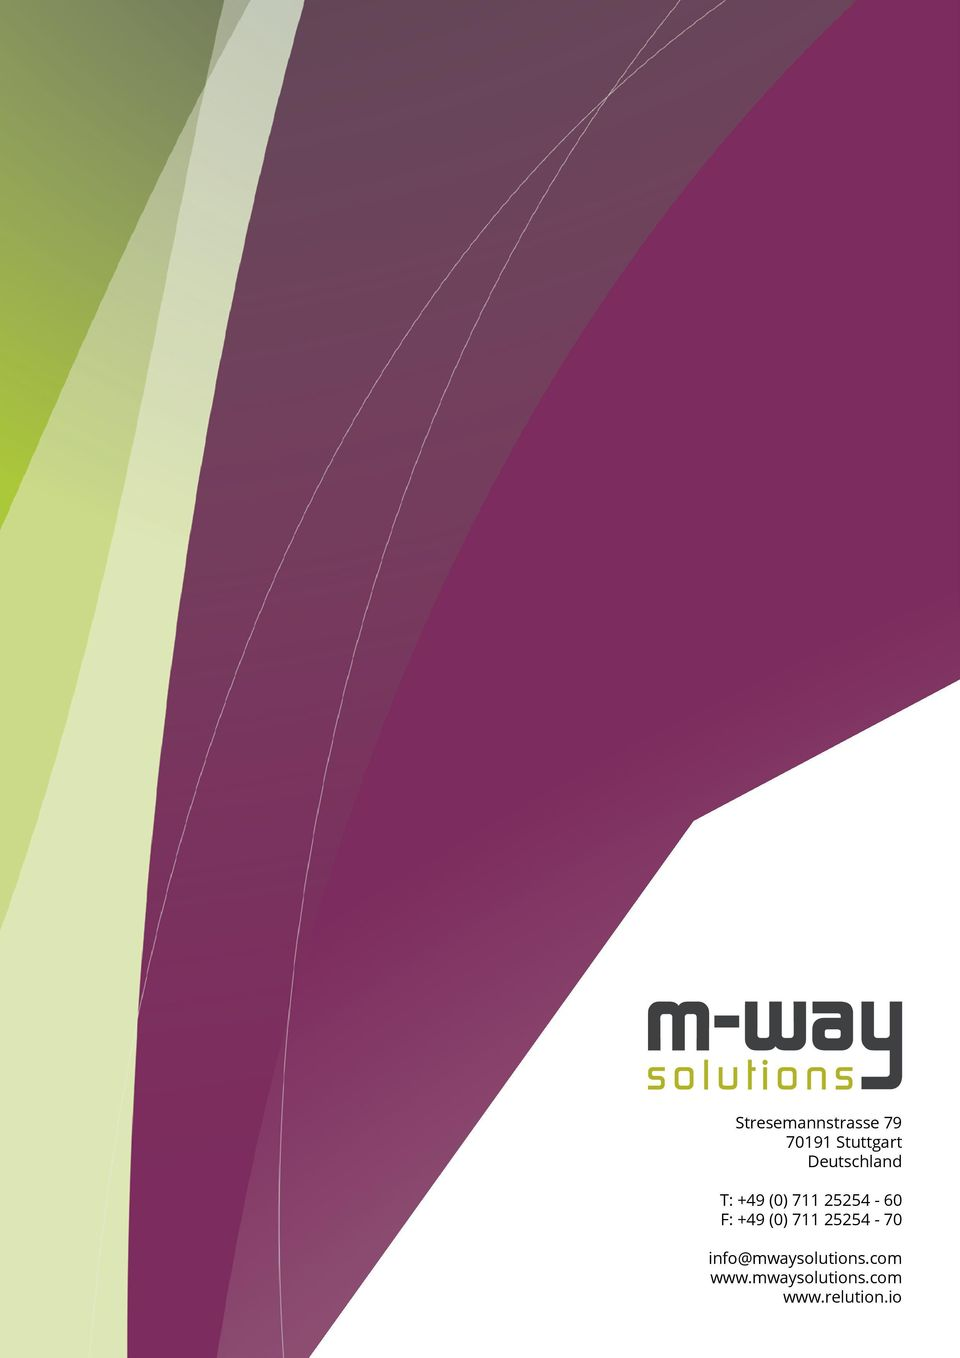 +49 (0) 711 25254-70 info@mwaysolutions.